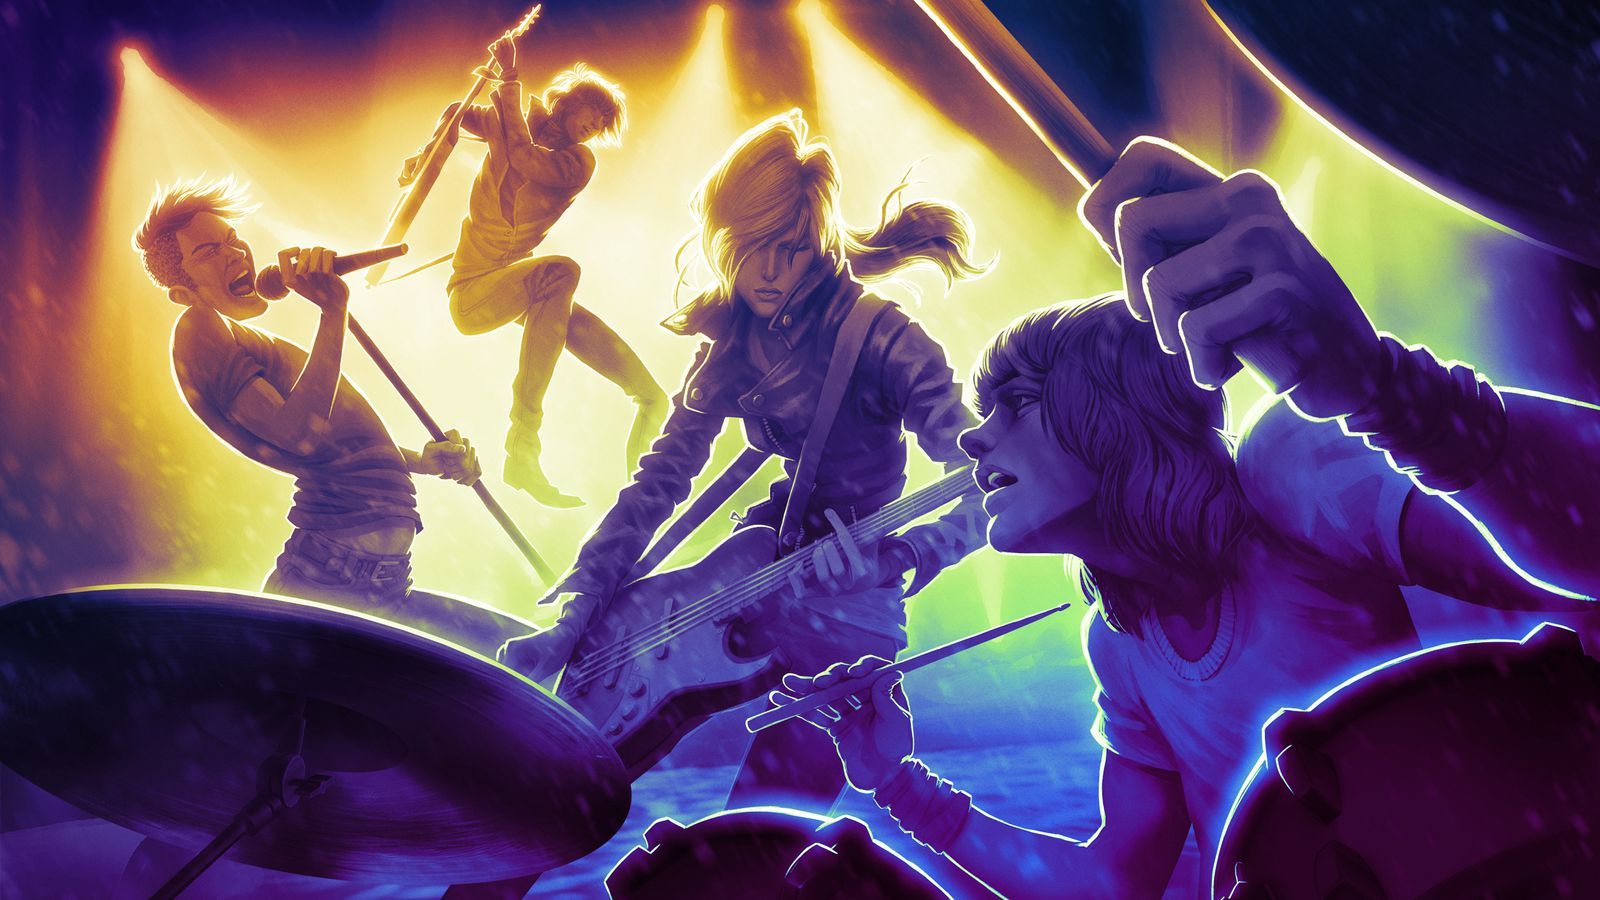 Rock Band 4 is coming, and Harmonix is bringing it back to basics